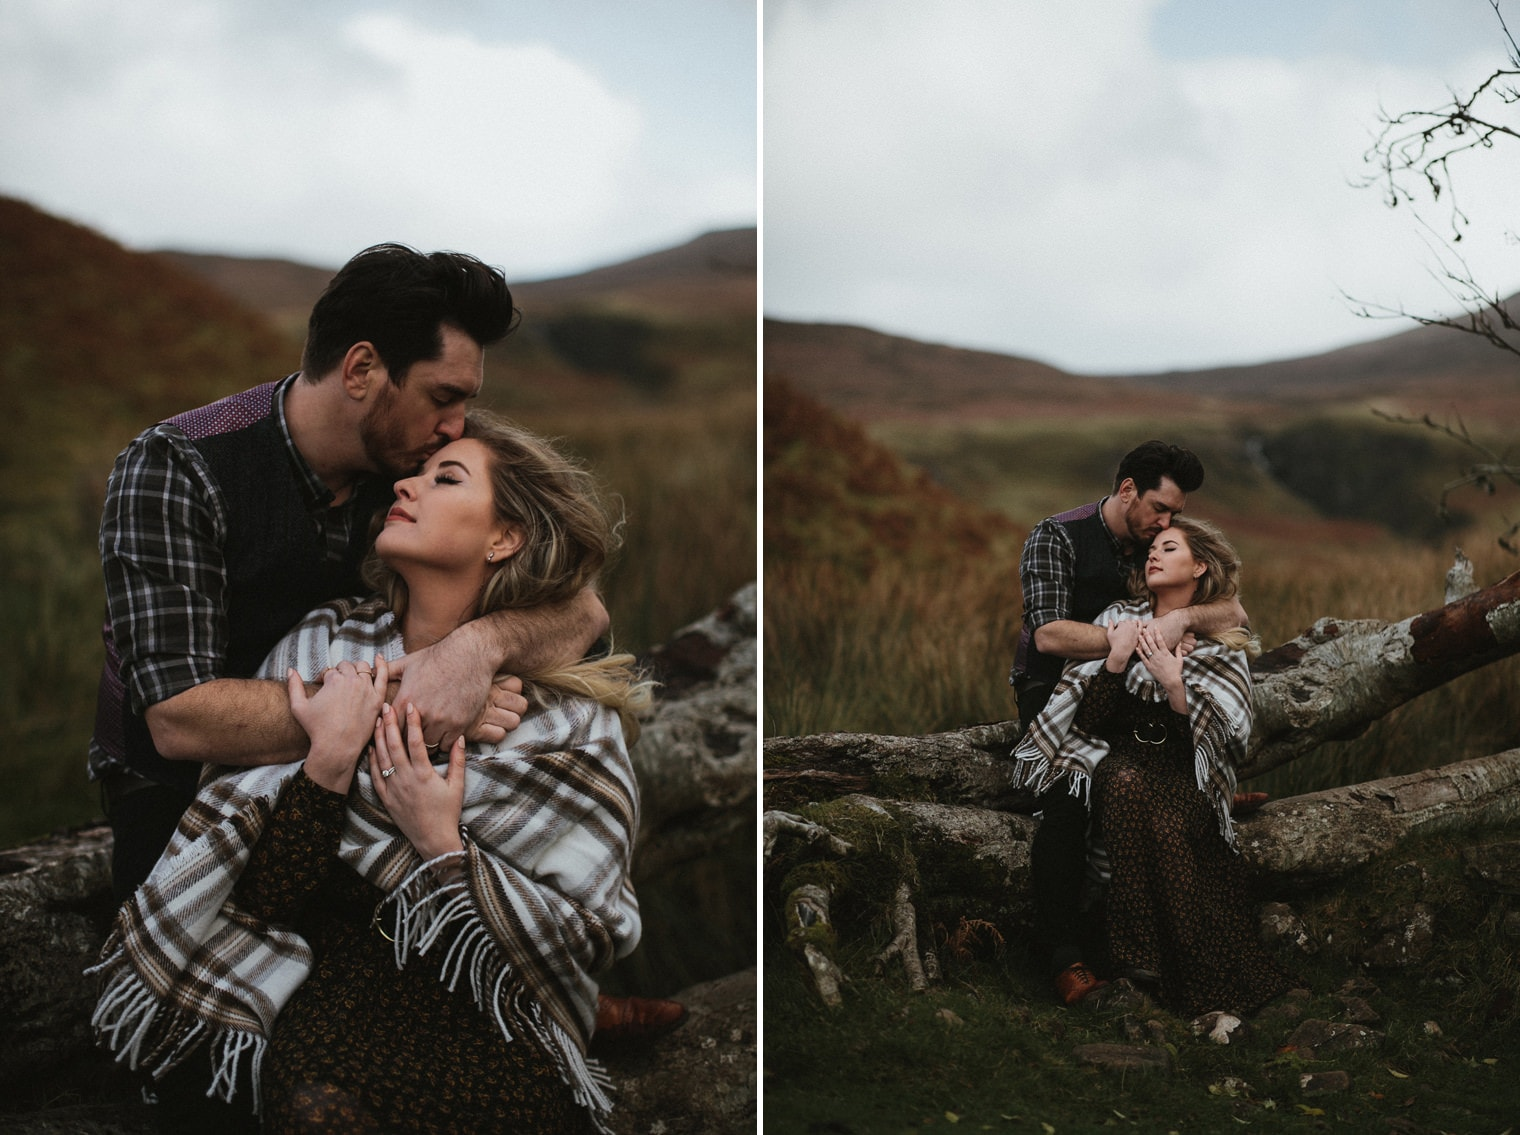 Isle of Skye anniversary session in Scotland, couple sitting on a tree, woman wrapped in tartan blanket